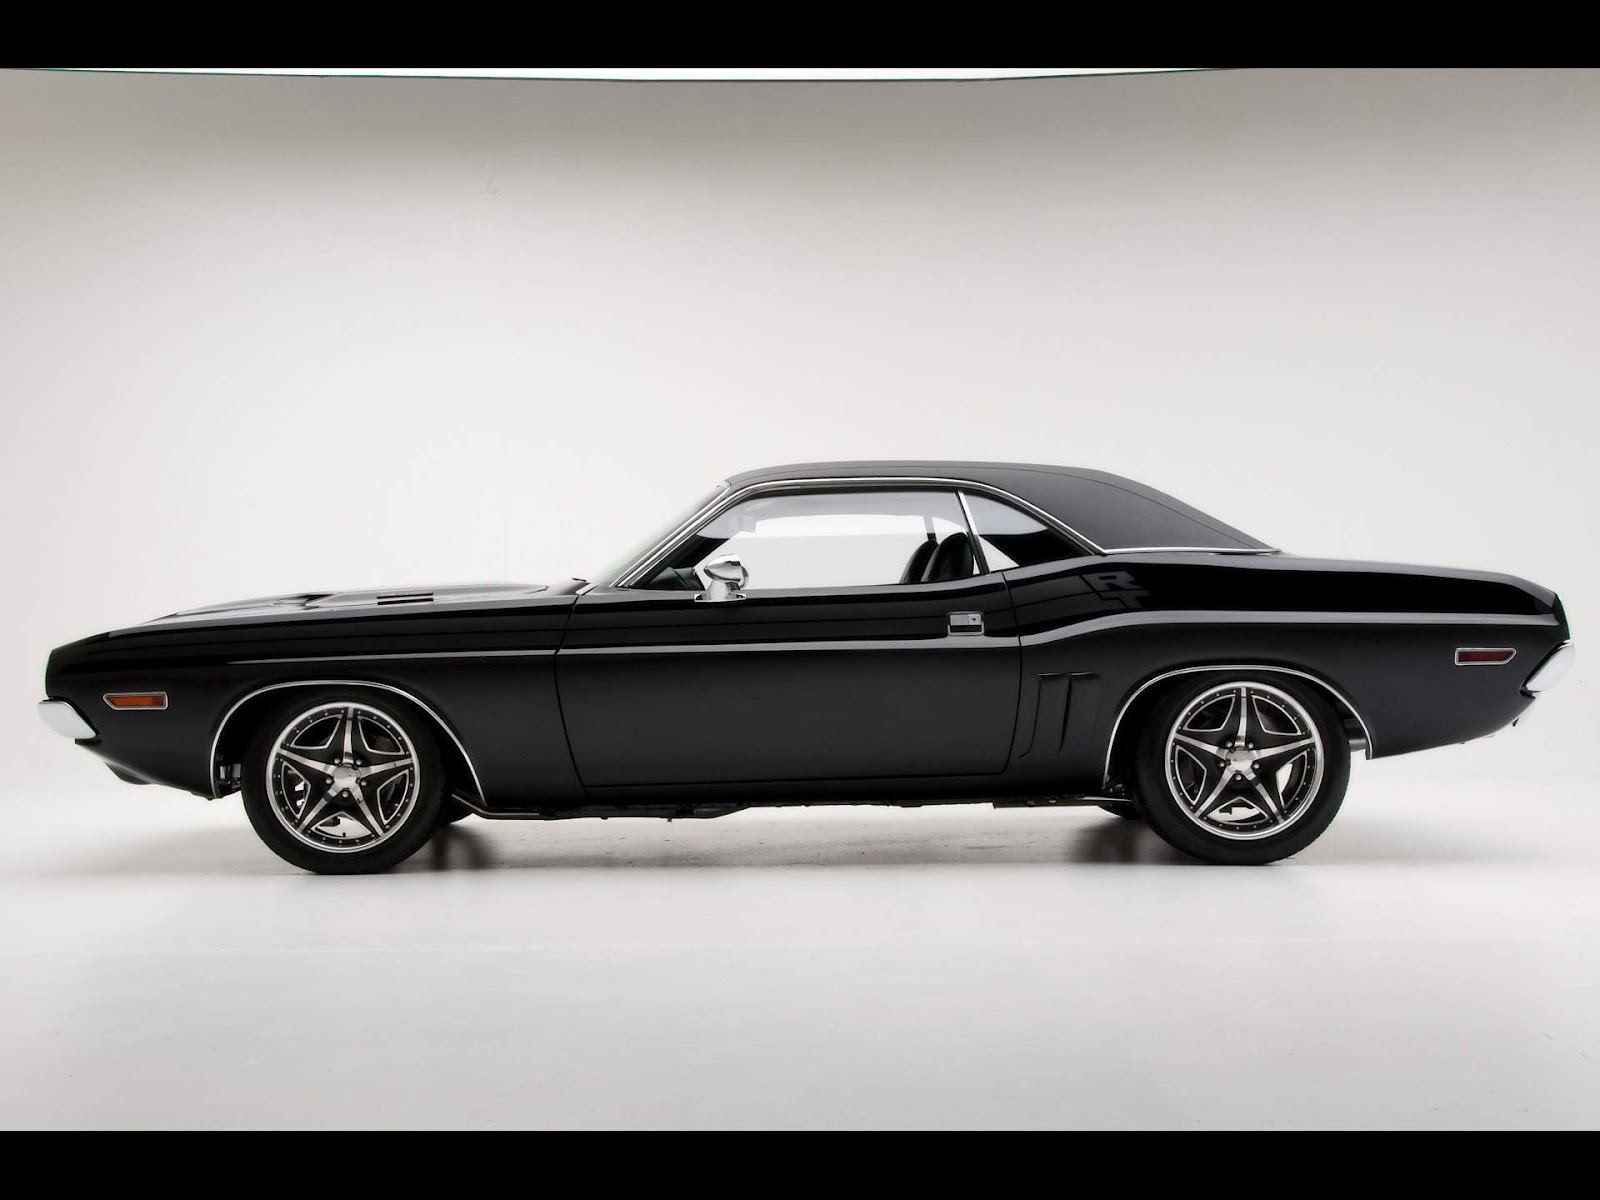 dodge challenger rt 1971 muscle car clic cars wallpapers